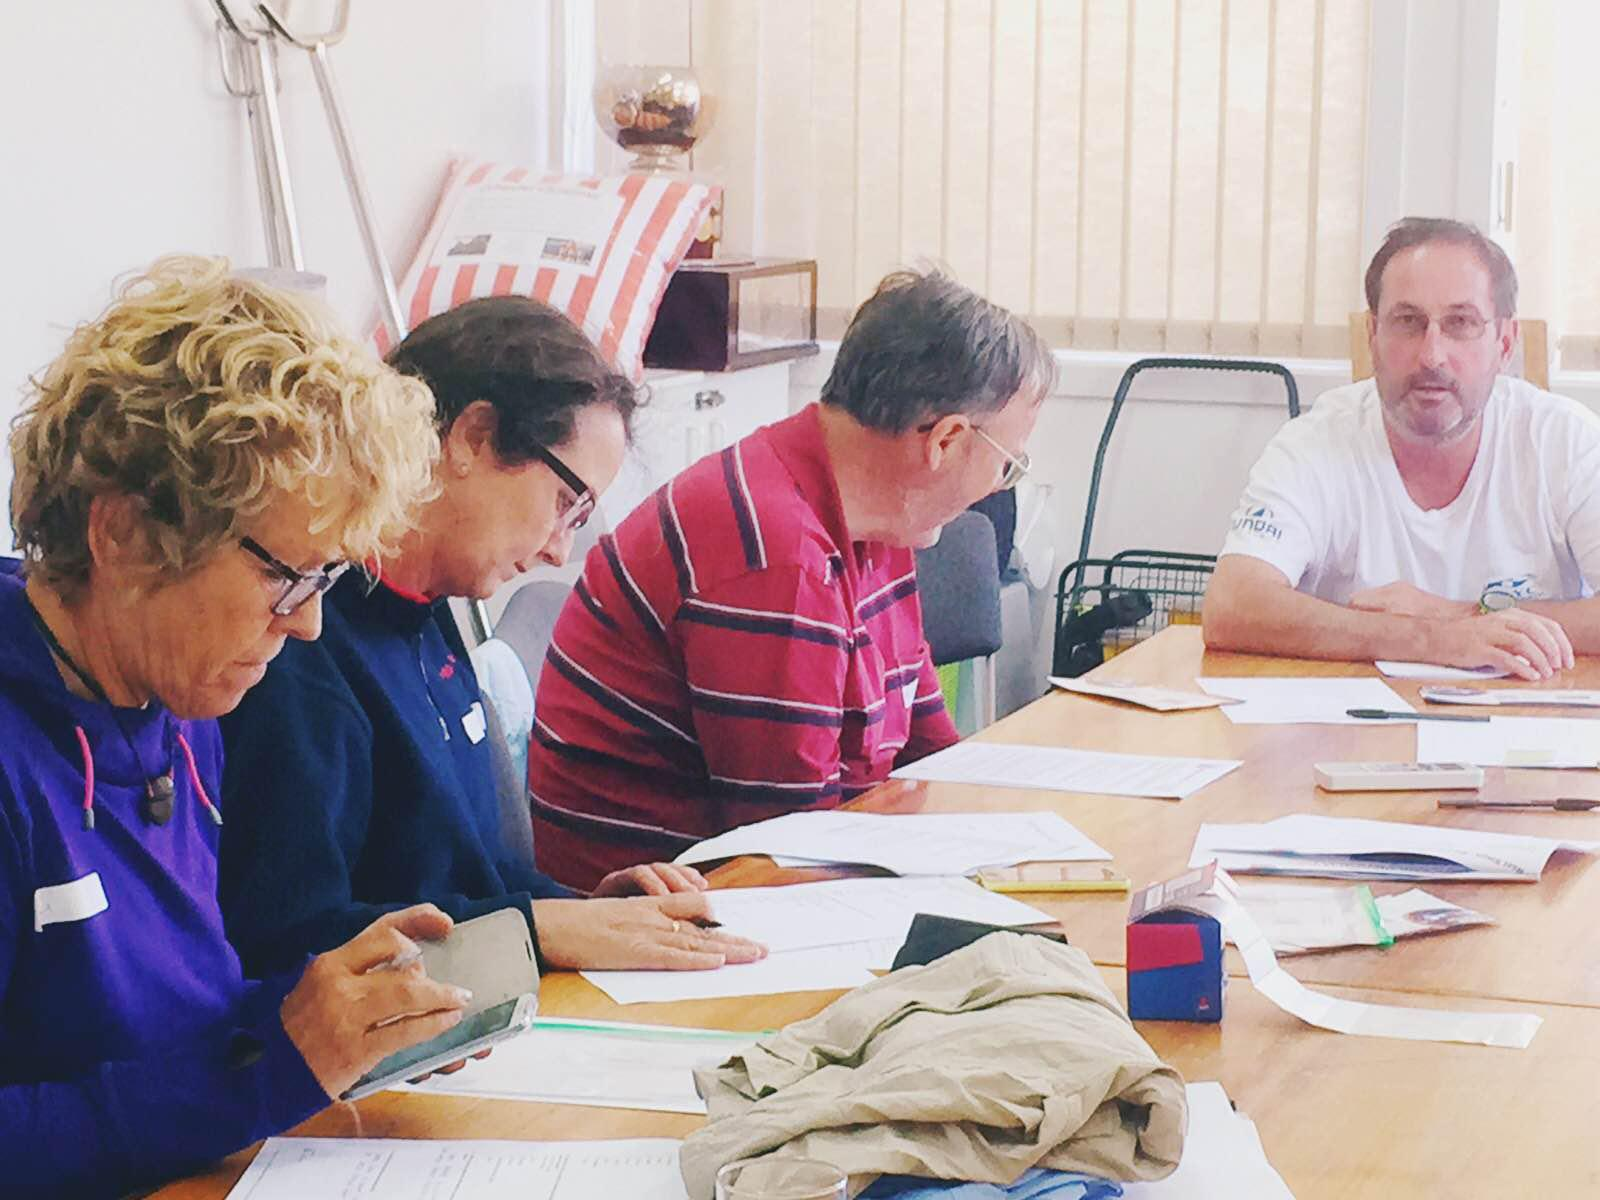 Hobart volunteers filling out forms